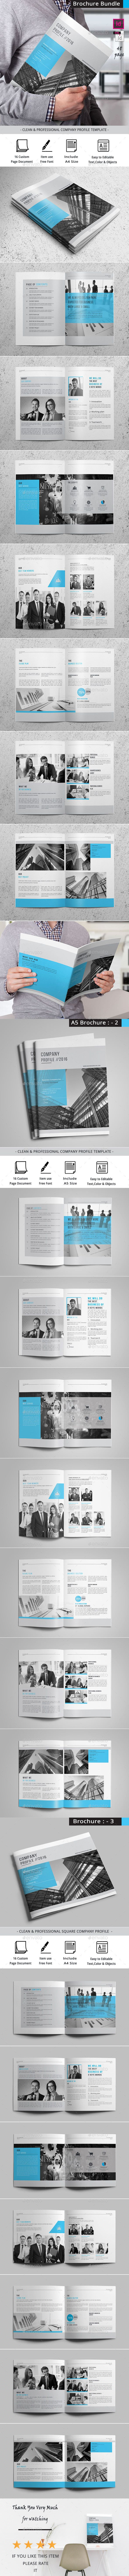 Professional Business Profile Template 17 Best Brochures Images On Pinterest